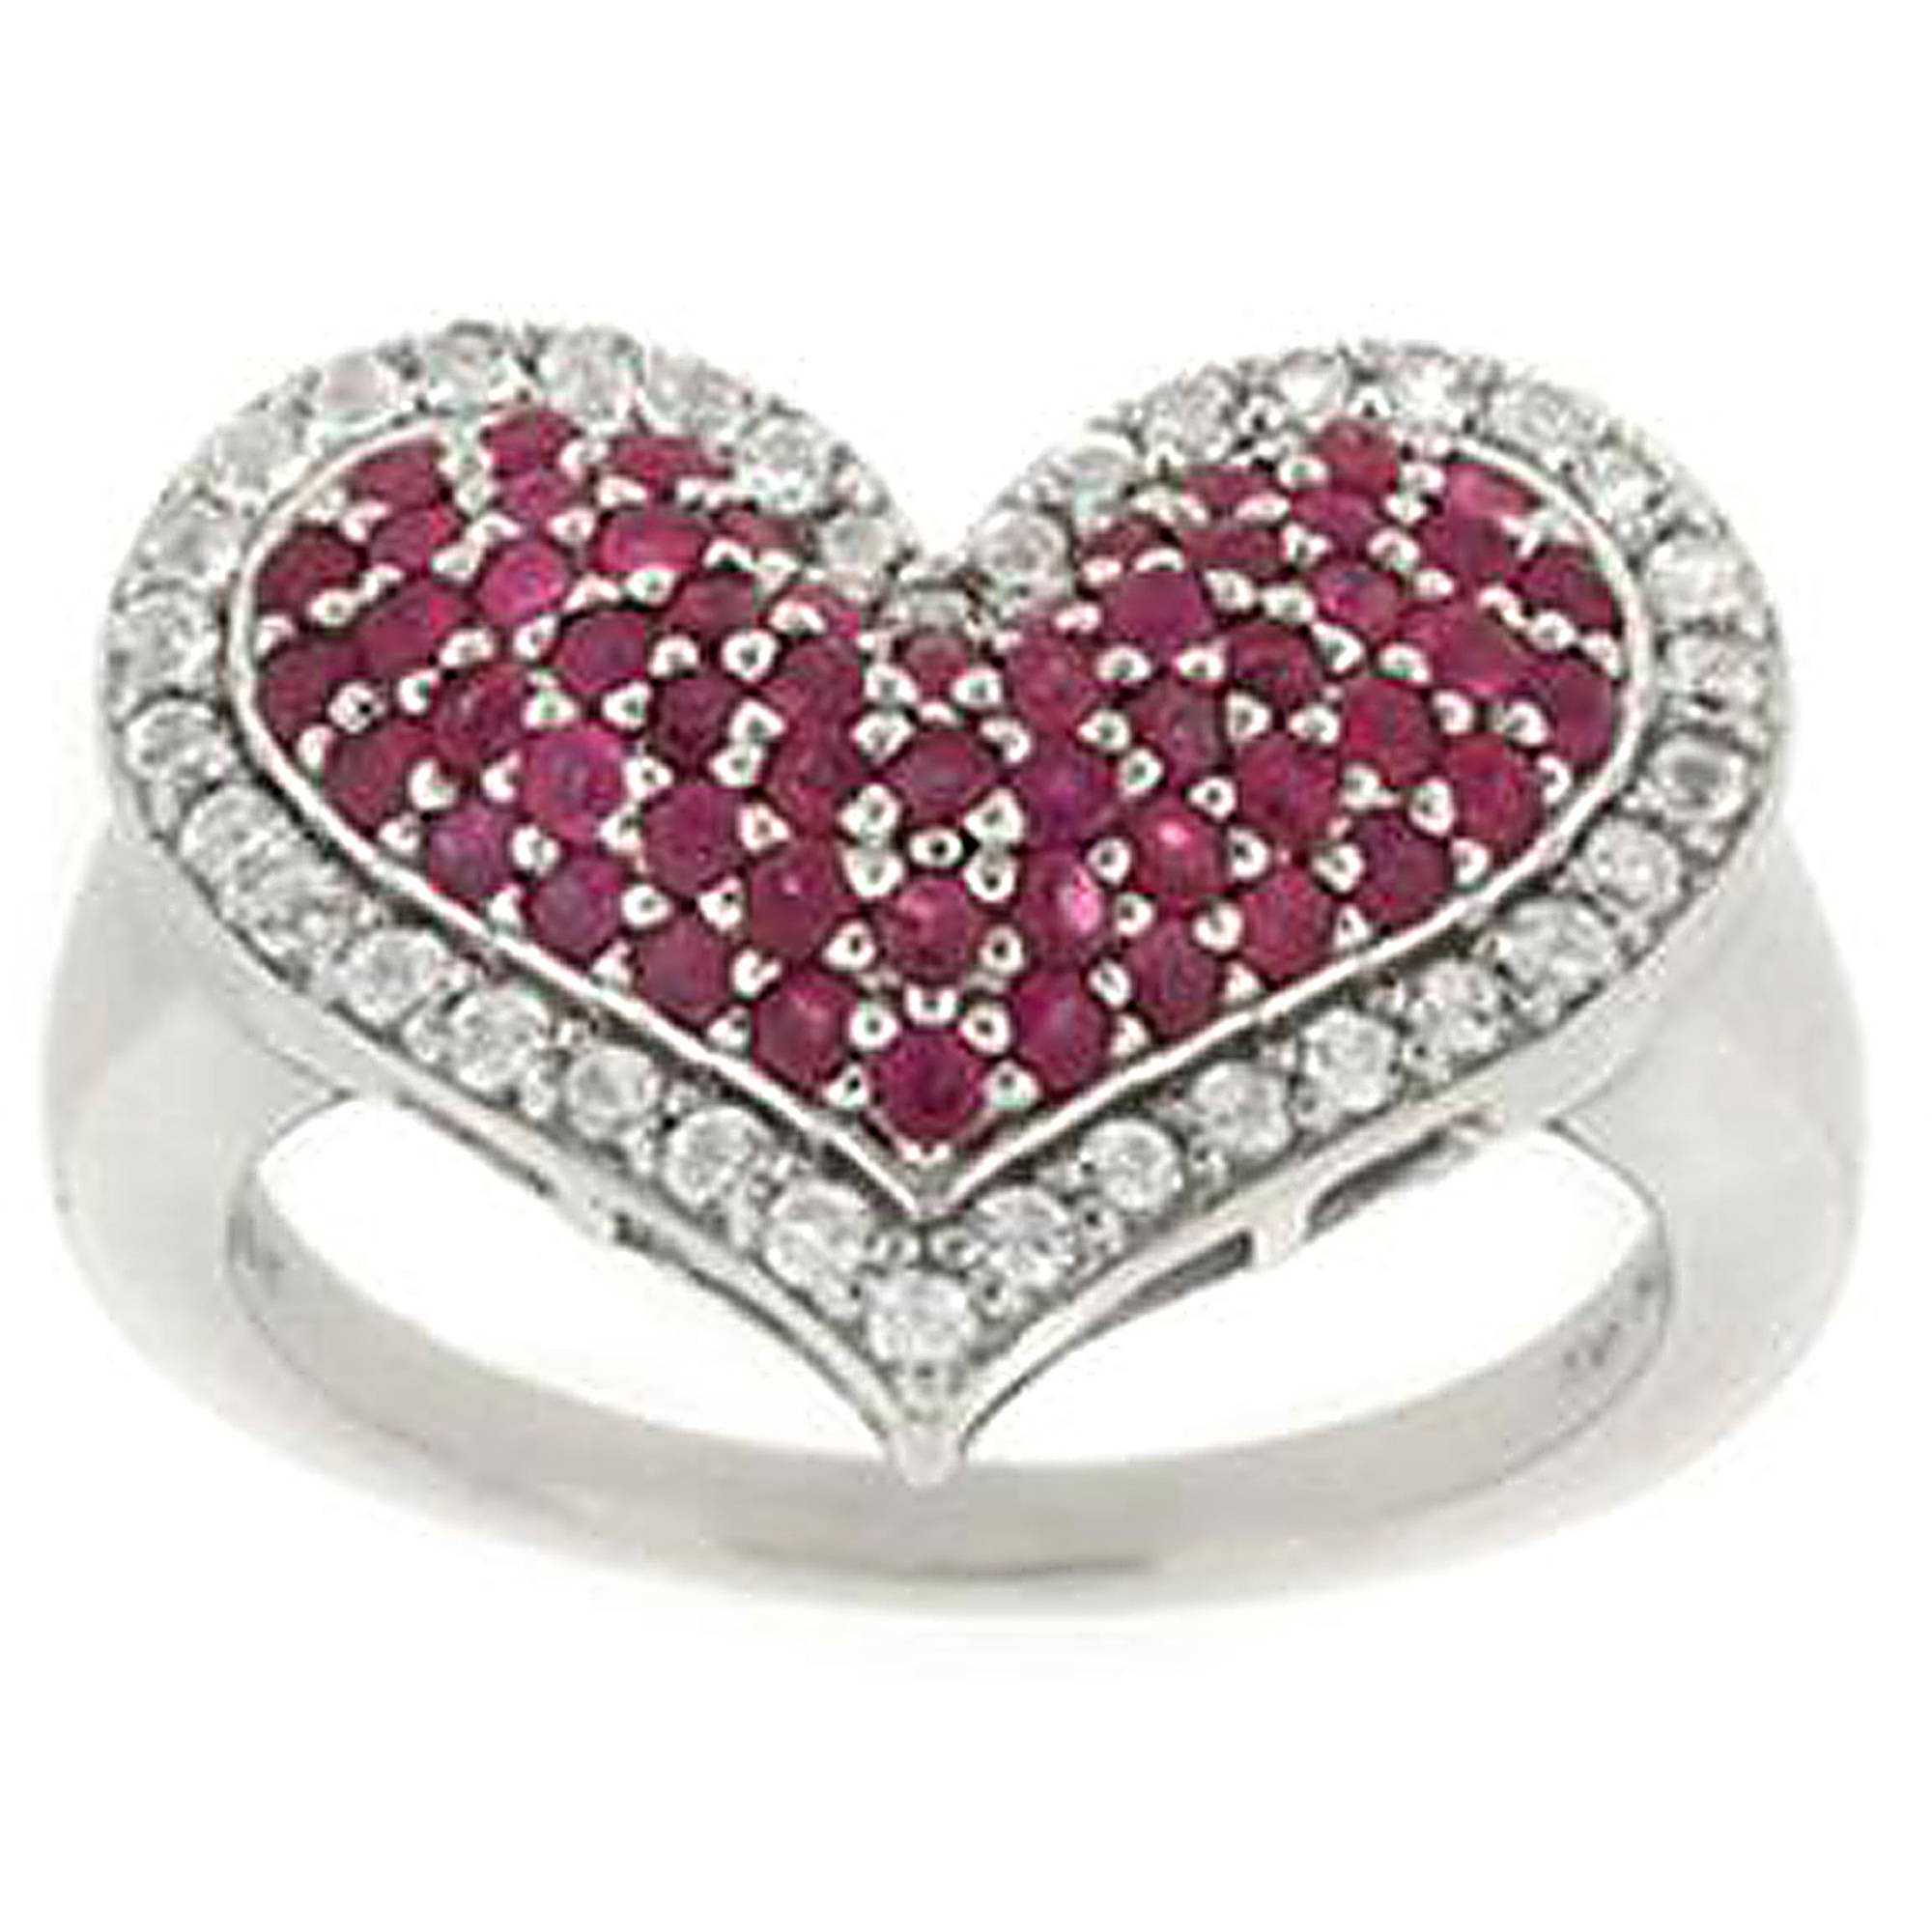 2.9 Carat T.G.W. Ruby and White Topaz Sterling Silver Heart Ring by Generic